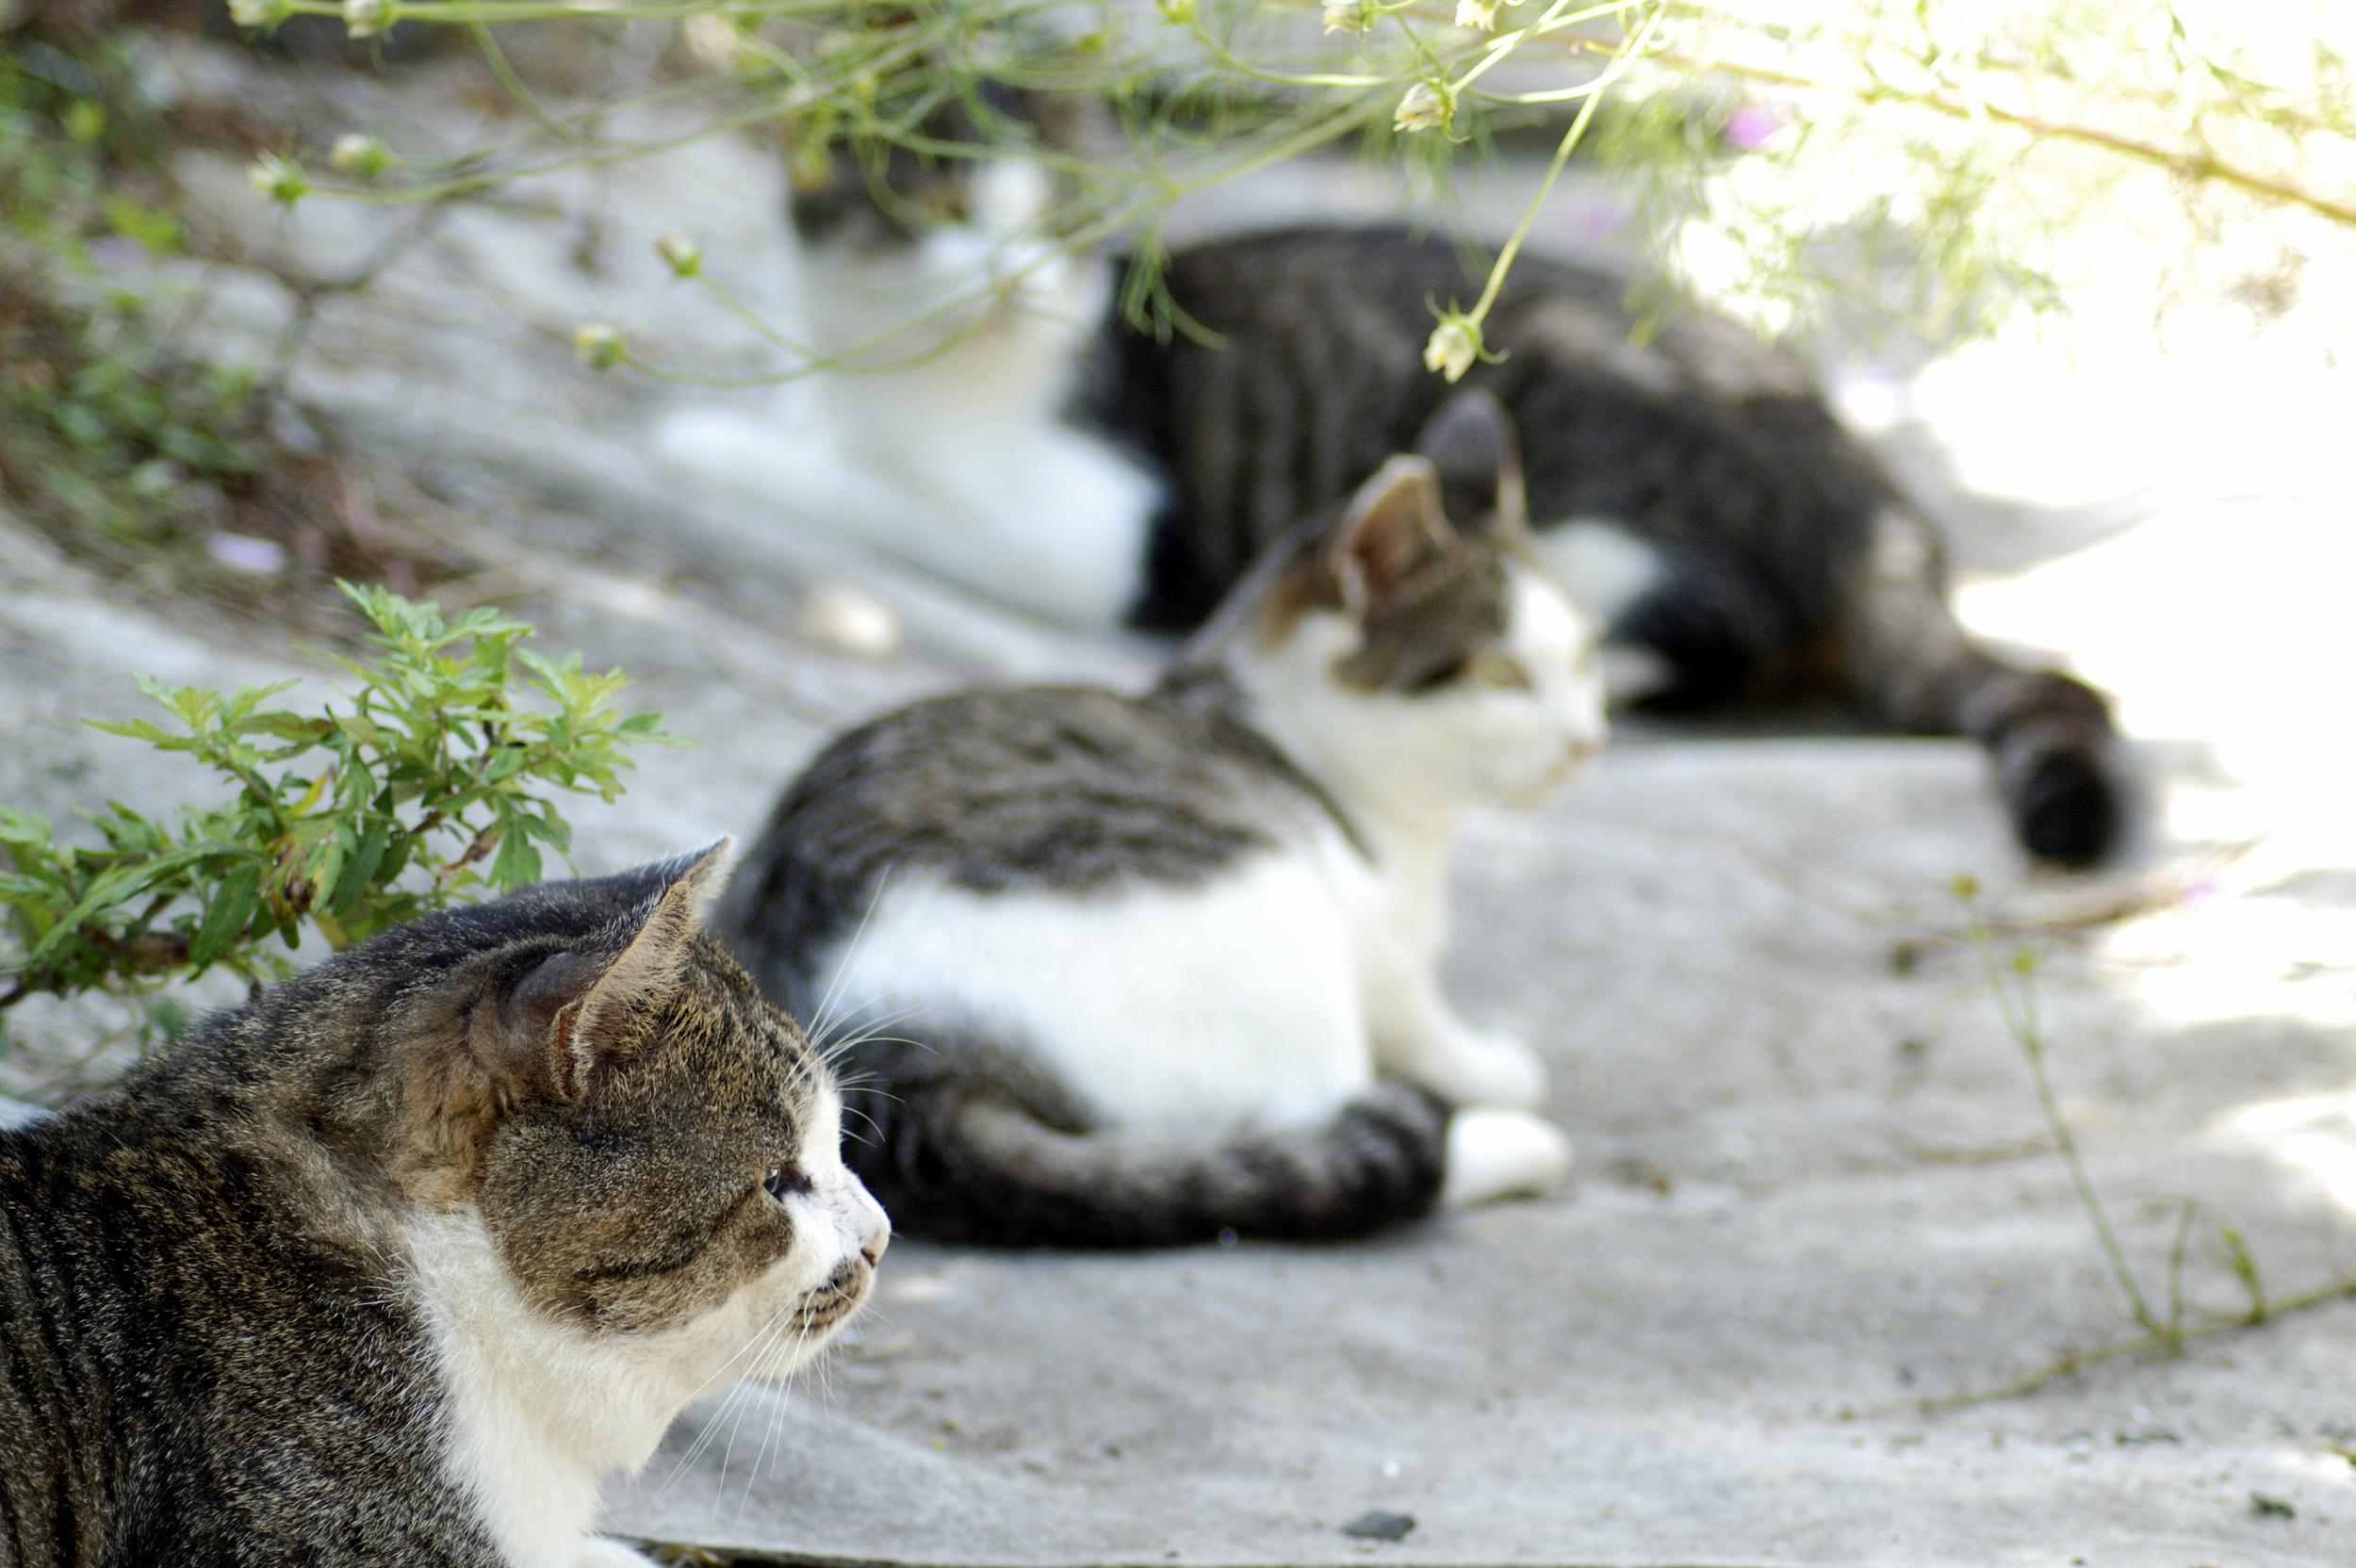 <p>The island of Tashirojima, or Cat Island, off the coast of Ishinomaki in Japan has a larger cat population than it has humans. The people who live on the island are those who take care of the cats. To the locals the cats represent luck and fortune, and there is even a cat shrine at the centre of the island, along with cat-shaped cottages. Cat-loving tourists are welcome to visit the island, but dogs are not allowed.</p>